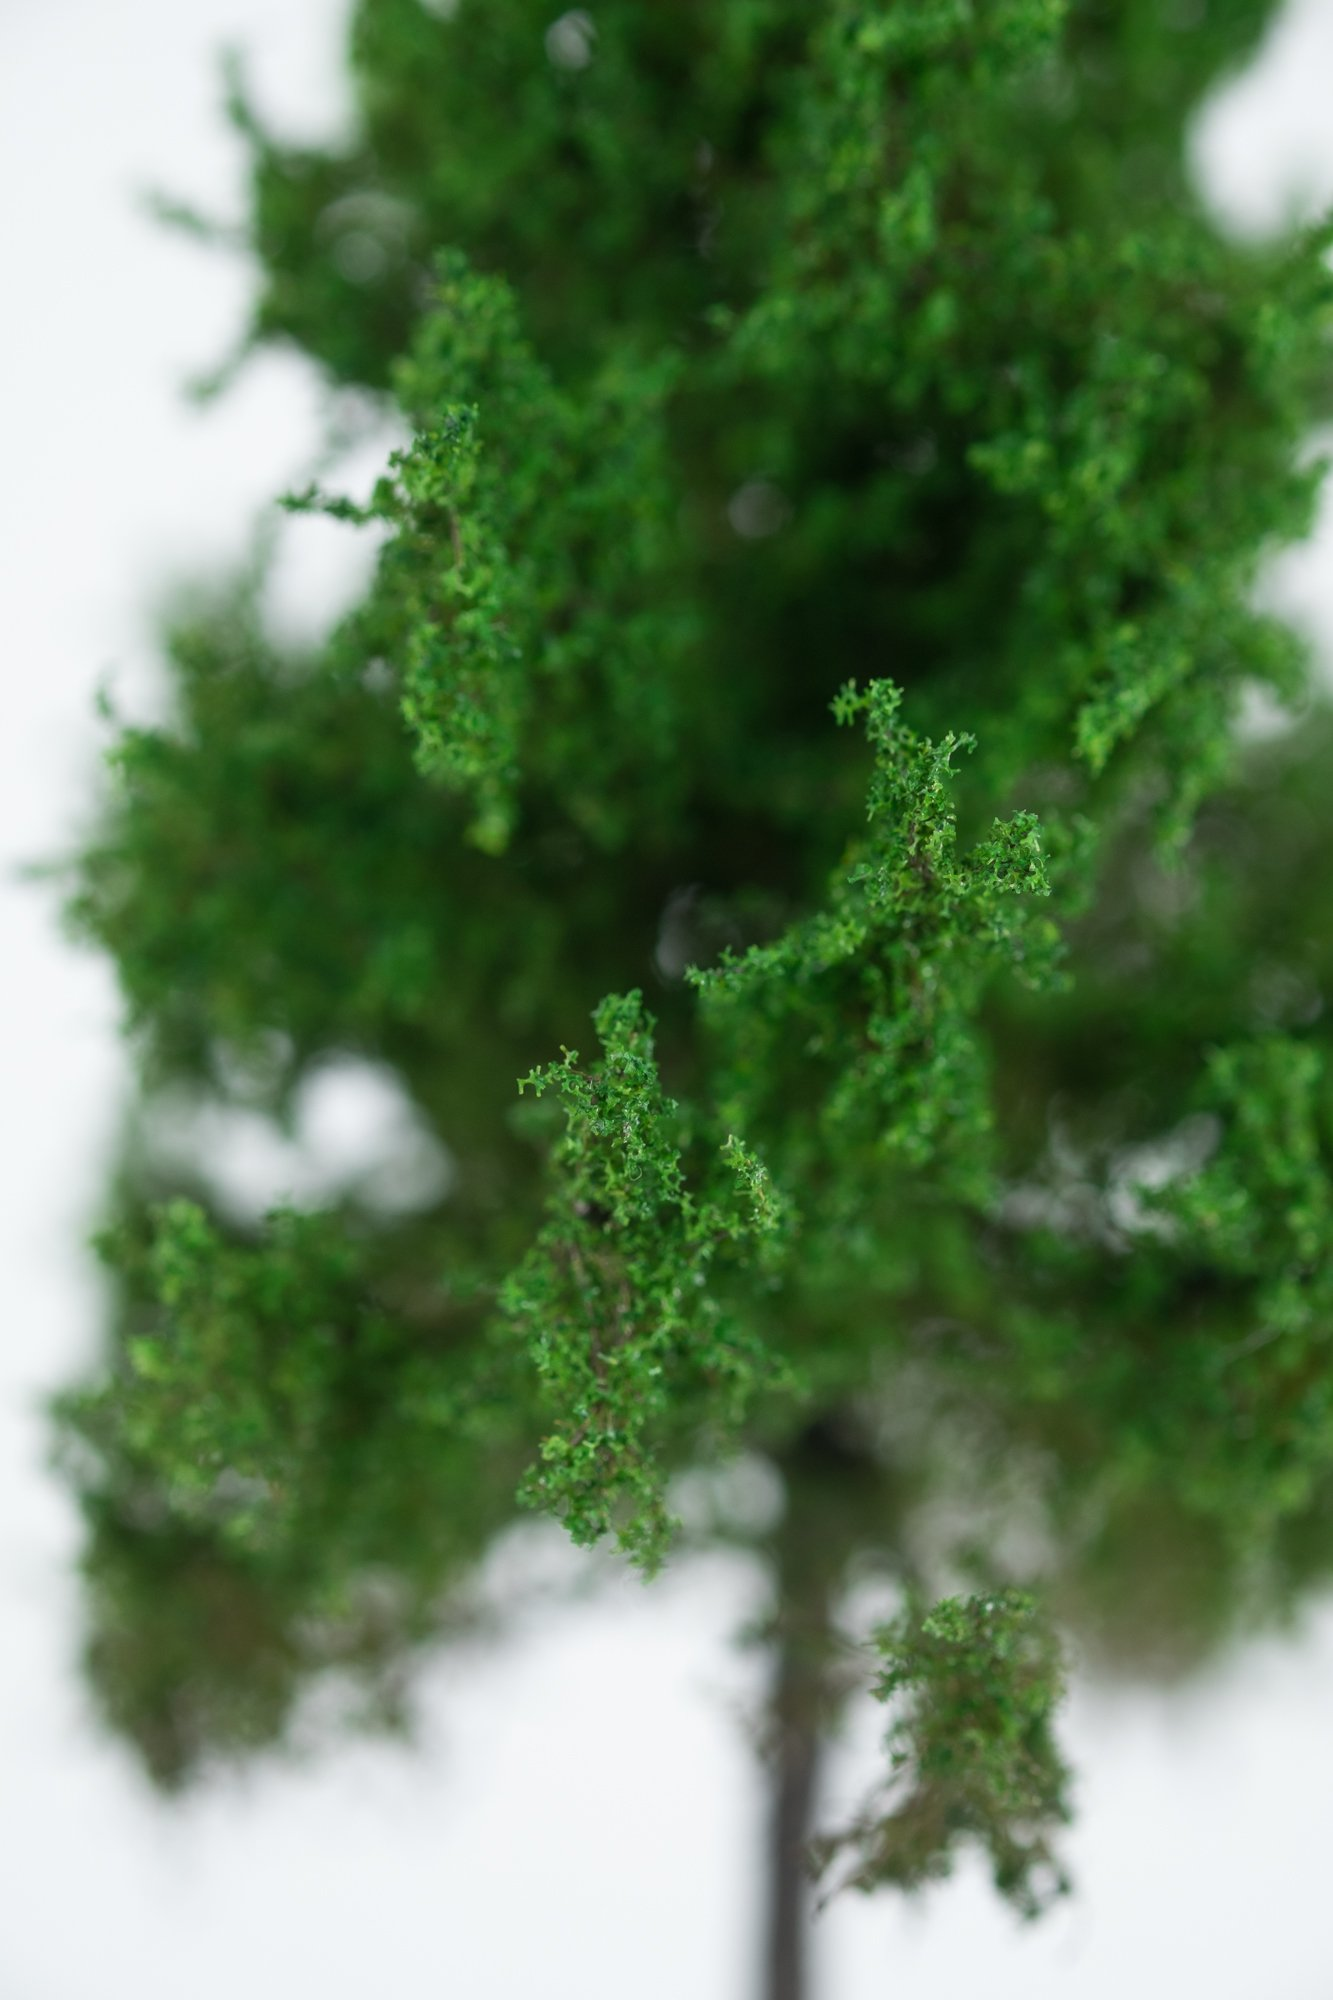 Closeup of foliage on forest larch tree model. Made from high quality model supplies by Primo Models.